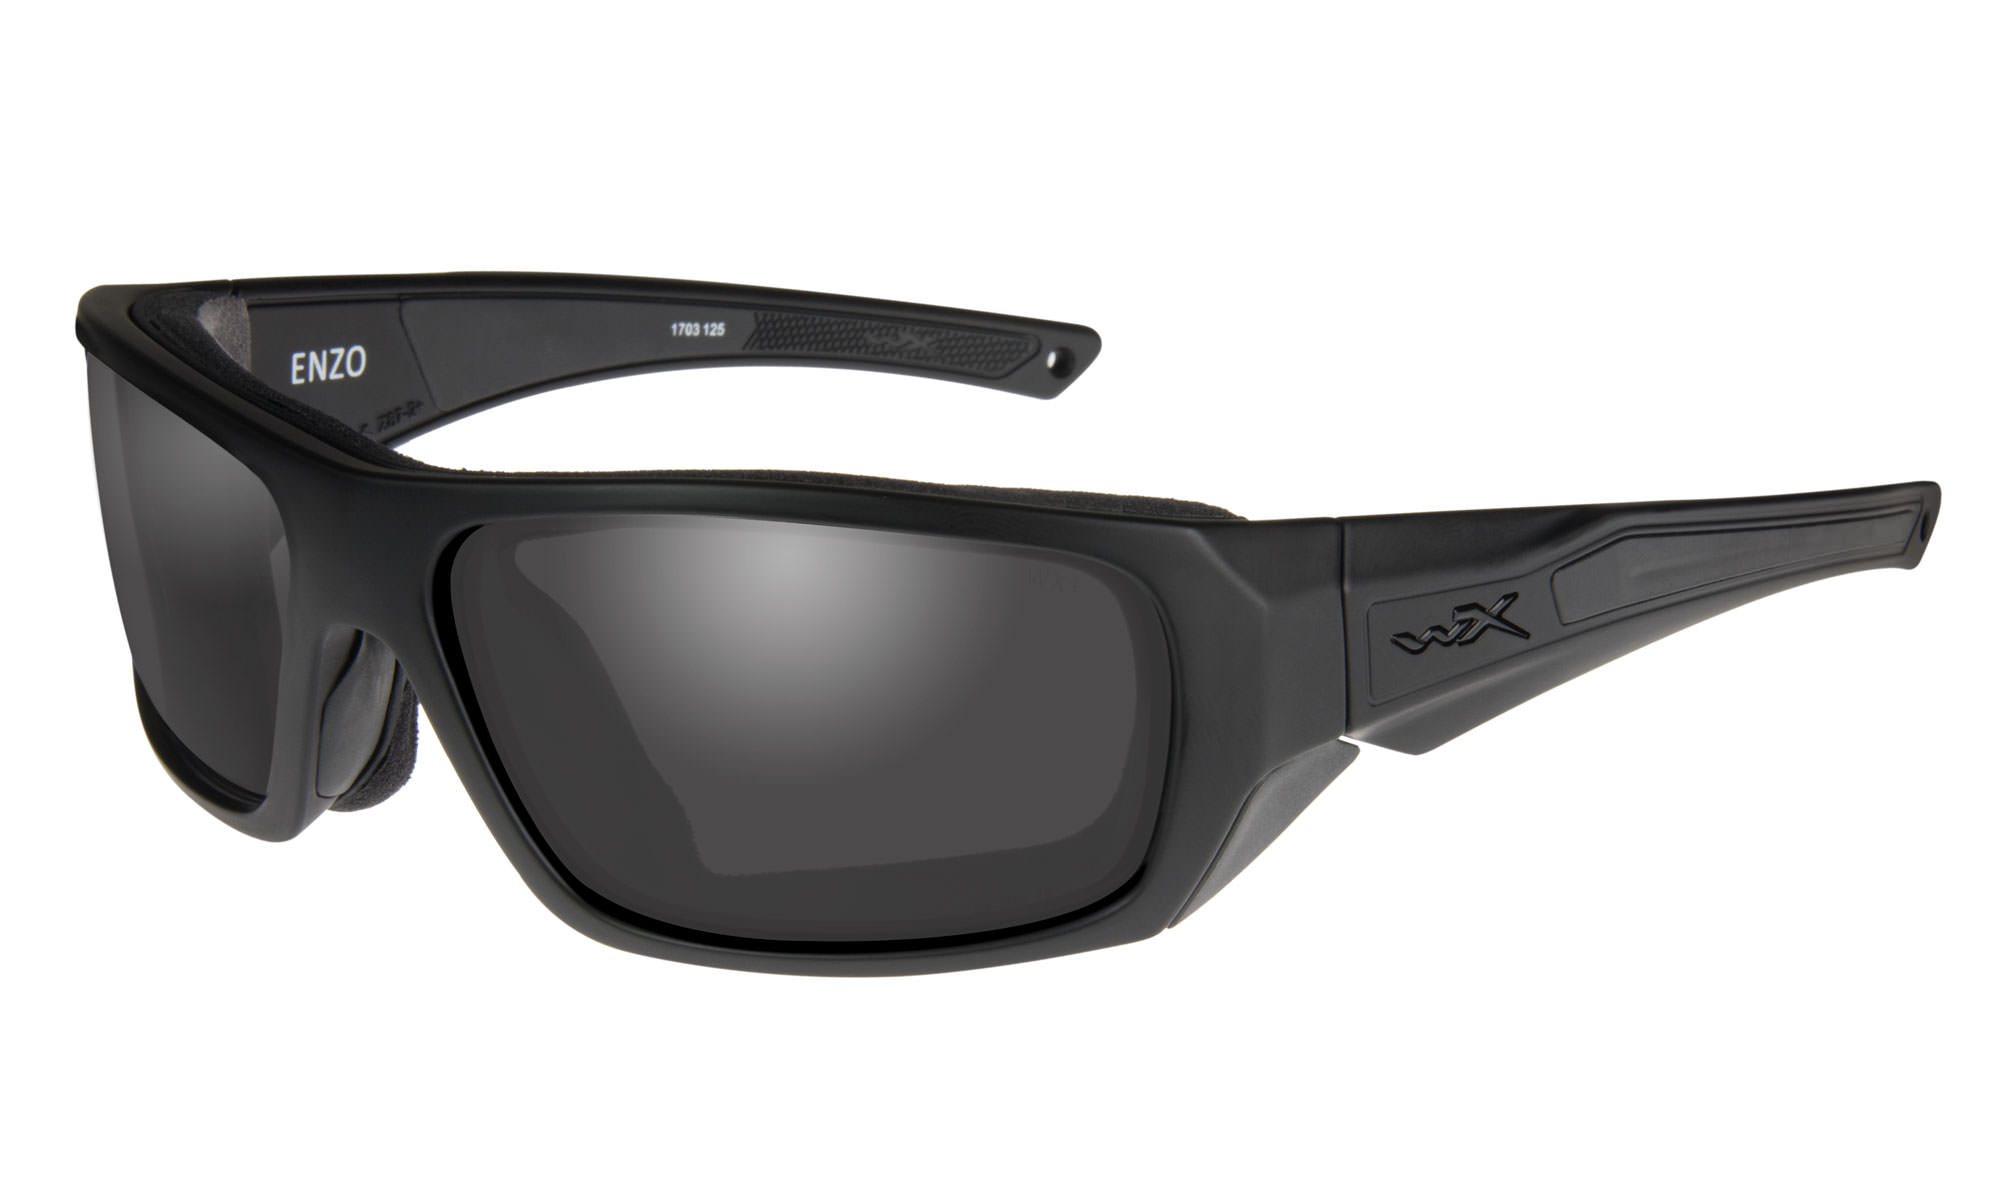 f1f0d8b74772 Wiley-X WX Enzo Matte Black with Smoke Grey Lenses | Wiley X